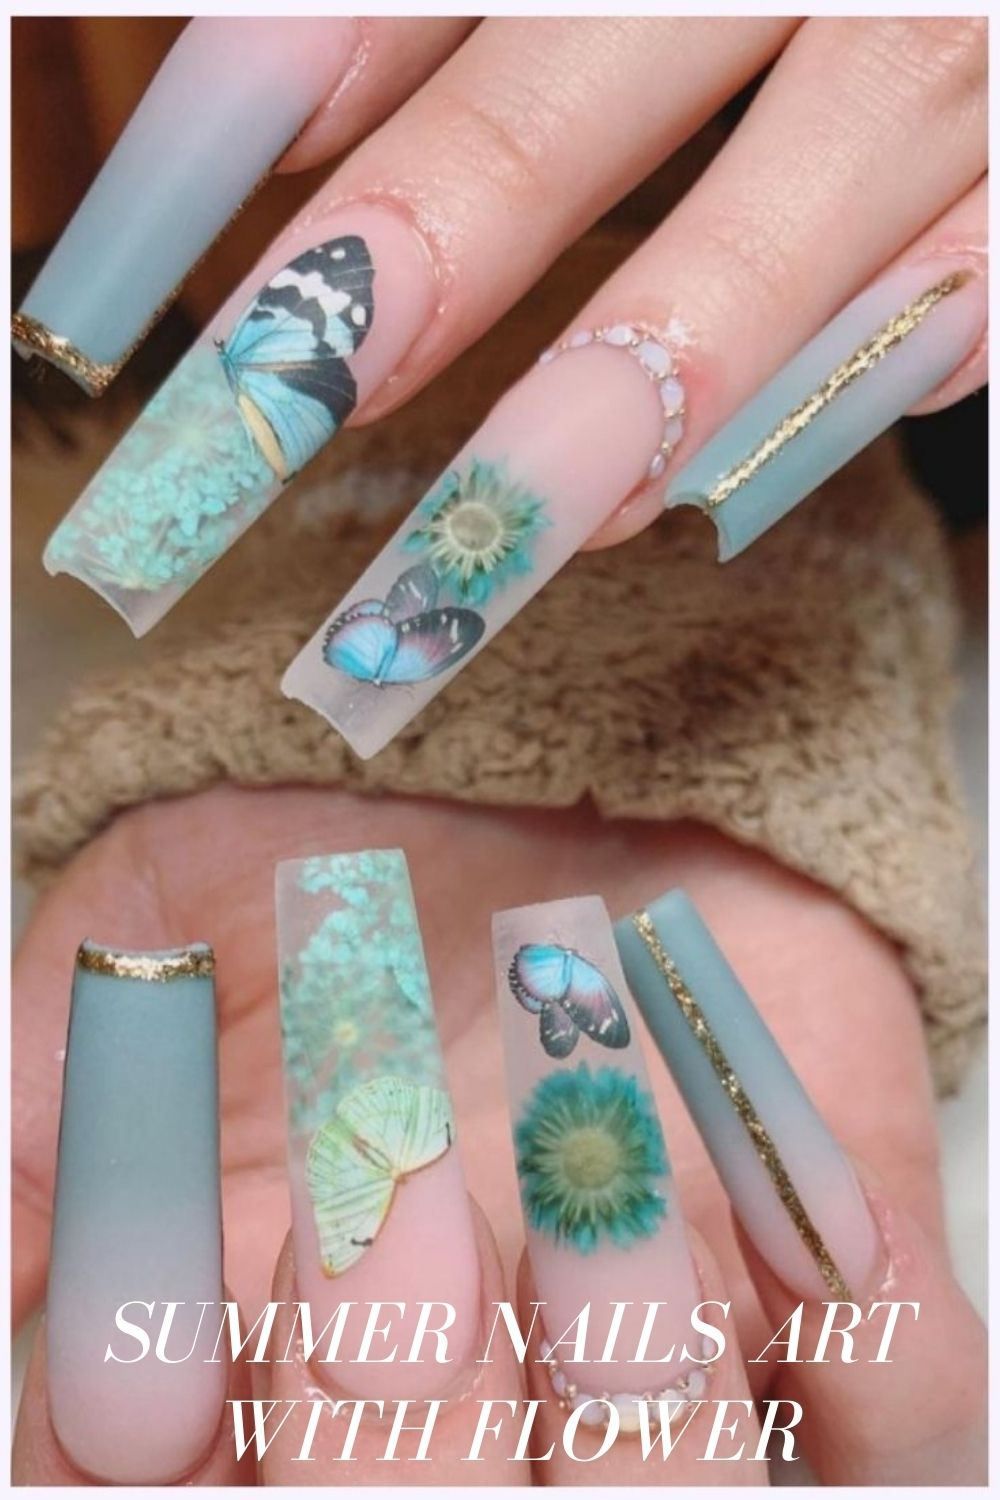 Blue and gold coffin shaped nails with butterfiy and flower nail designs